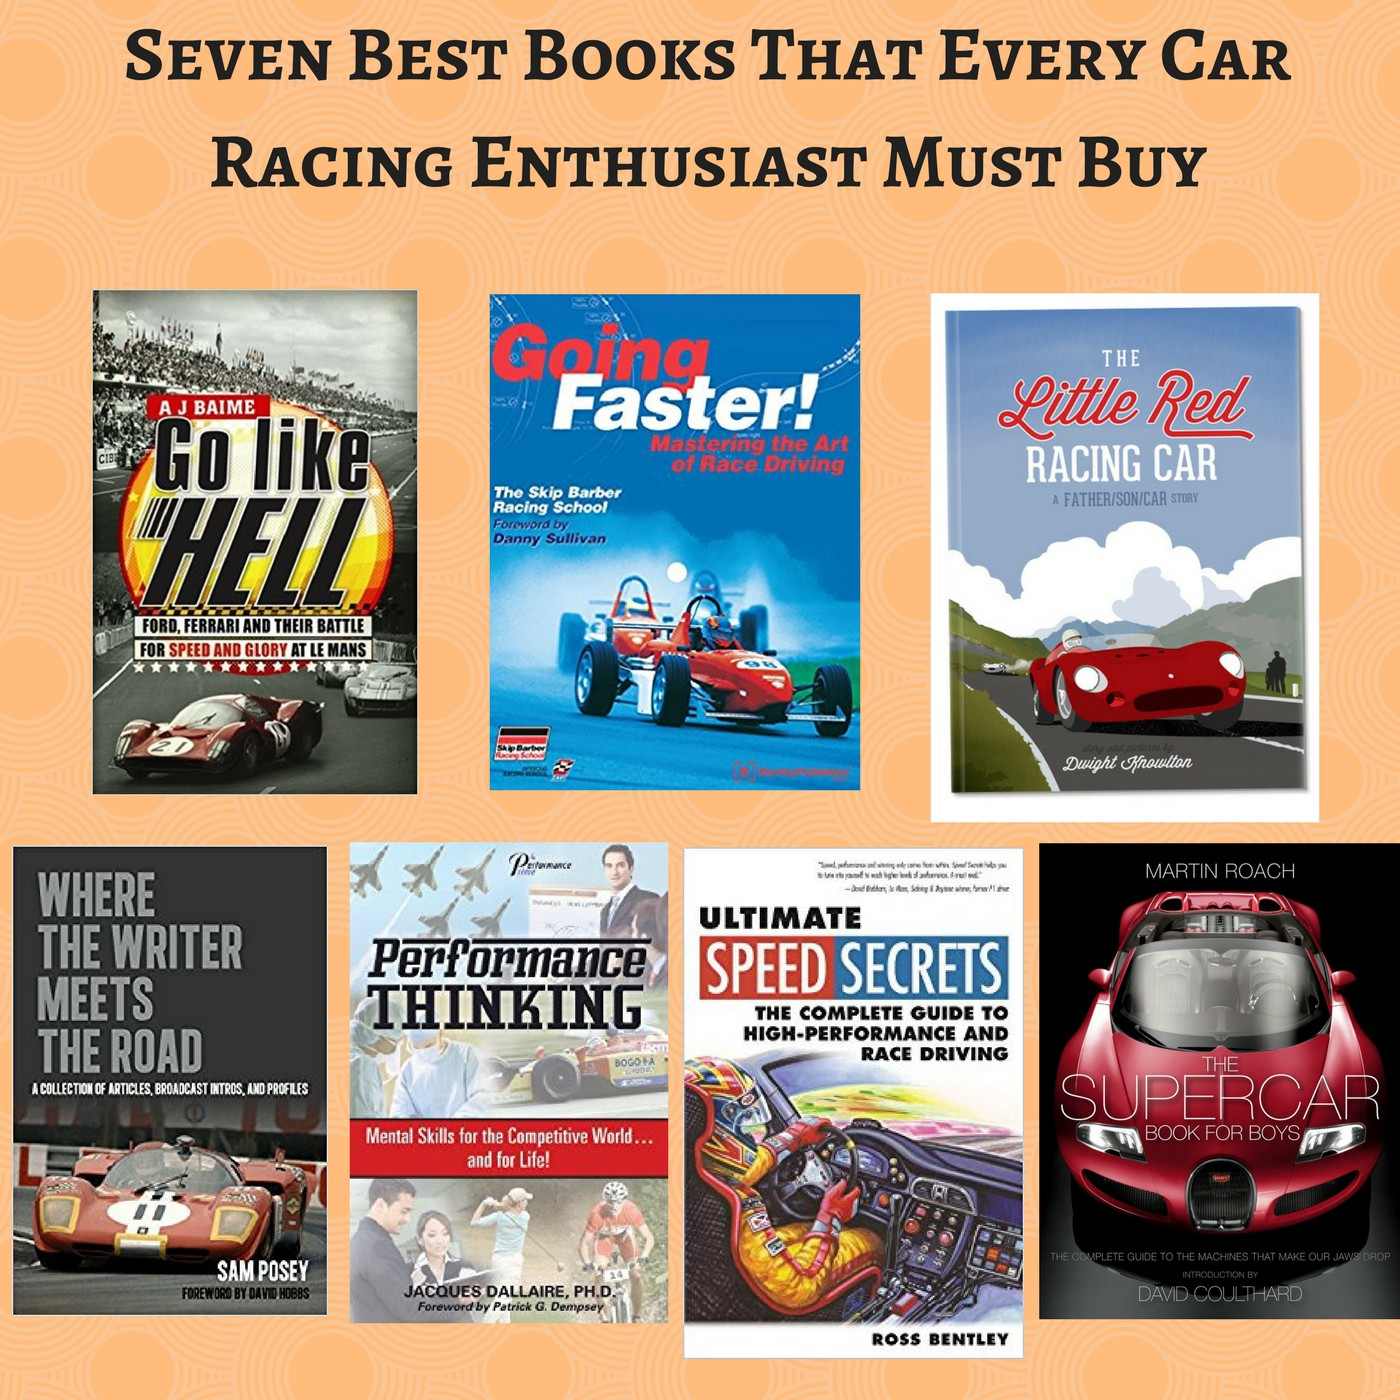 Seven Best Books That Every Car Racing Enthusiast Must Buy